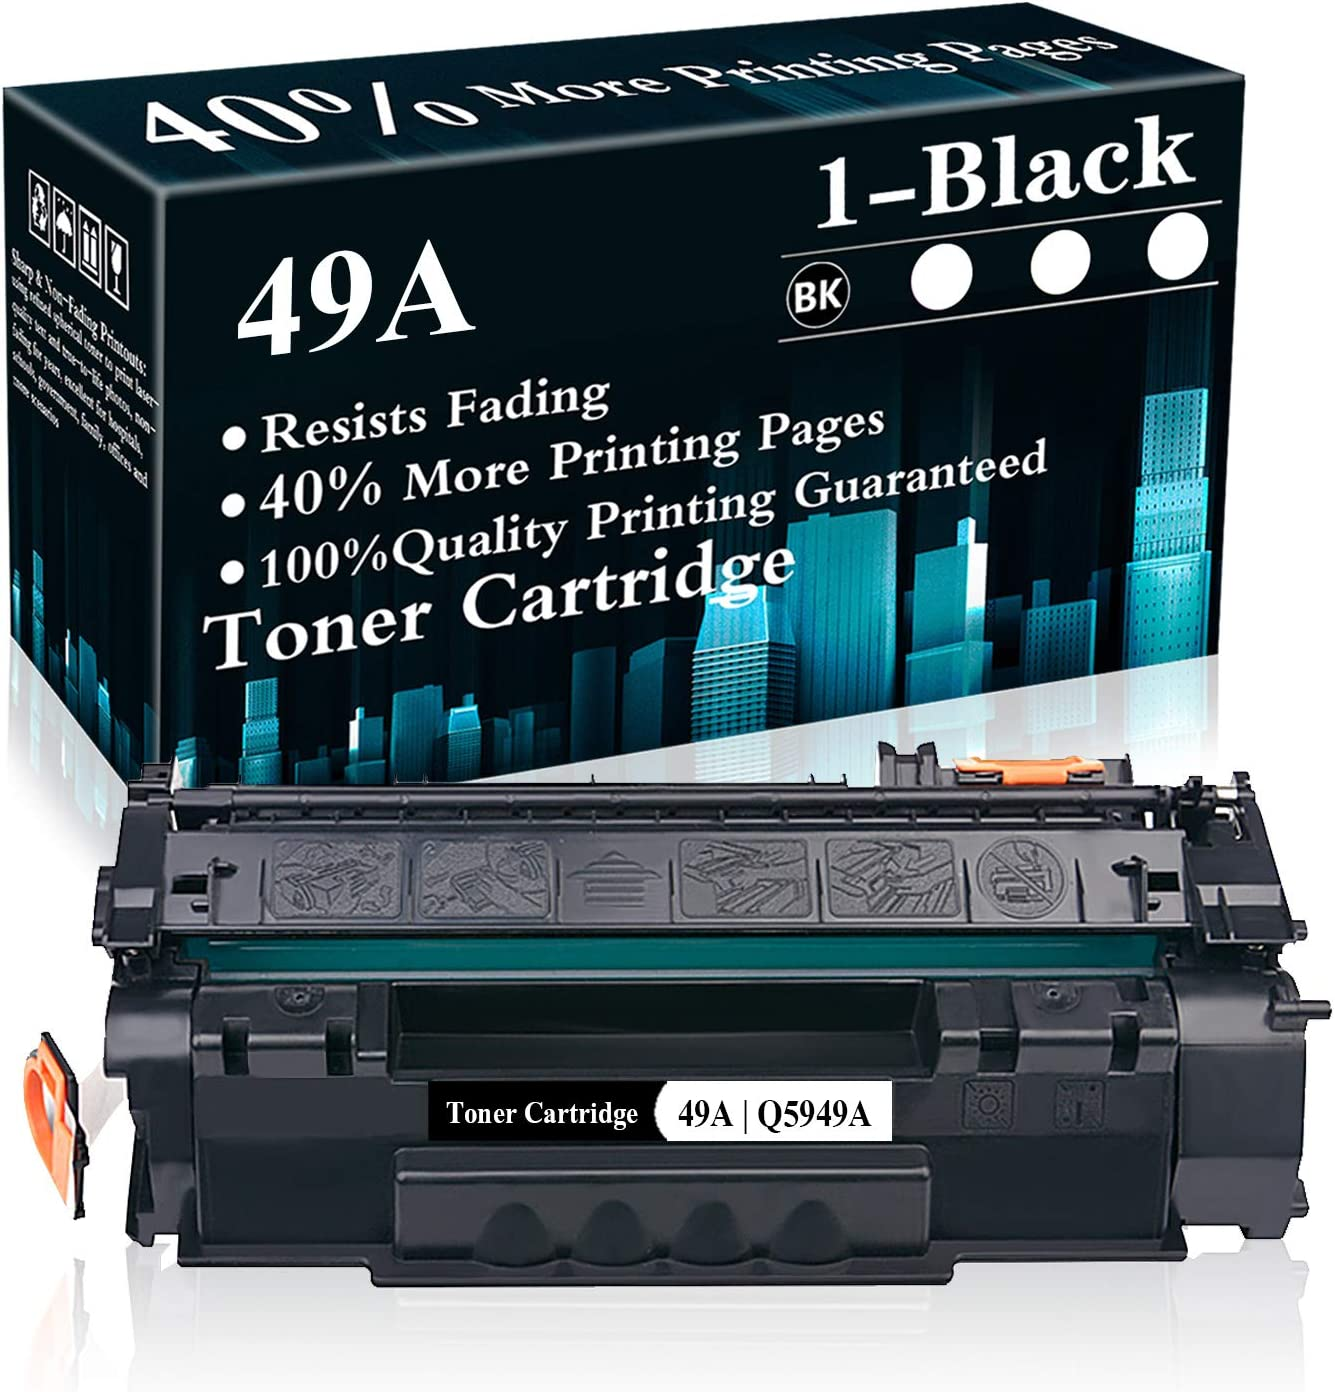 1 Black 49A | Q5949A Toner Cartridge Replacement for HP Laserjet 1320 1320n 1320nw 1320tn 3390 MFP 3392 MFP 1160 Printer,Sold by TopInk